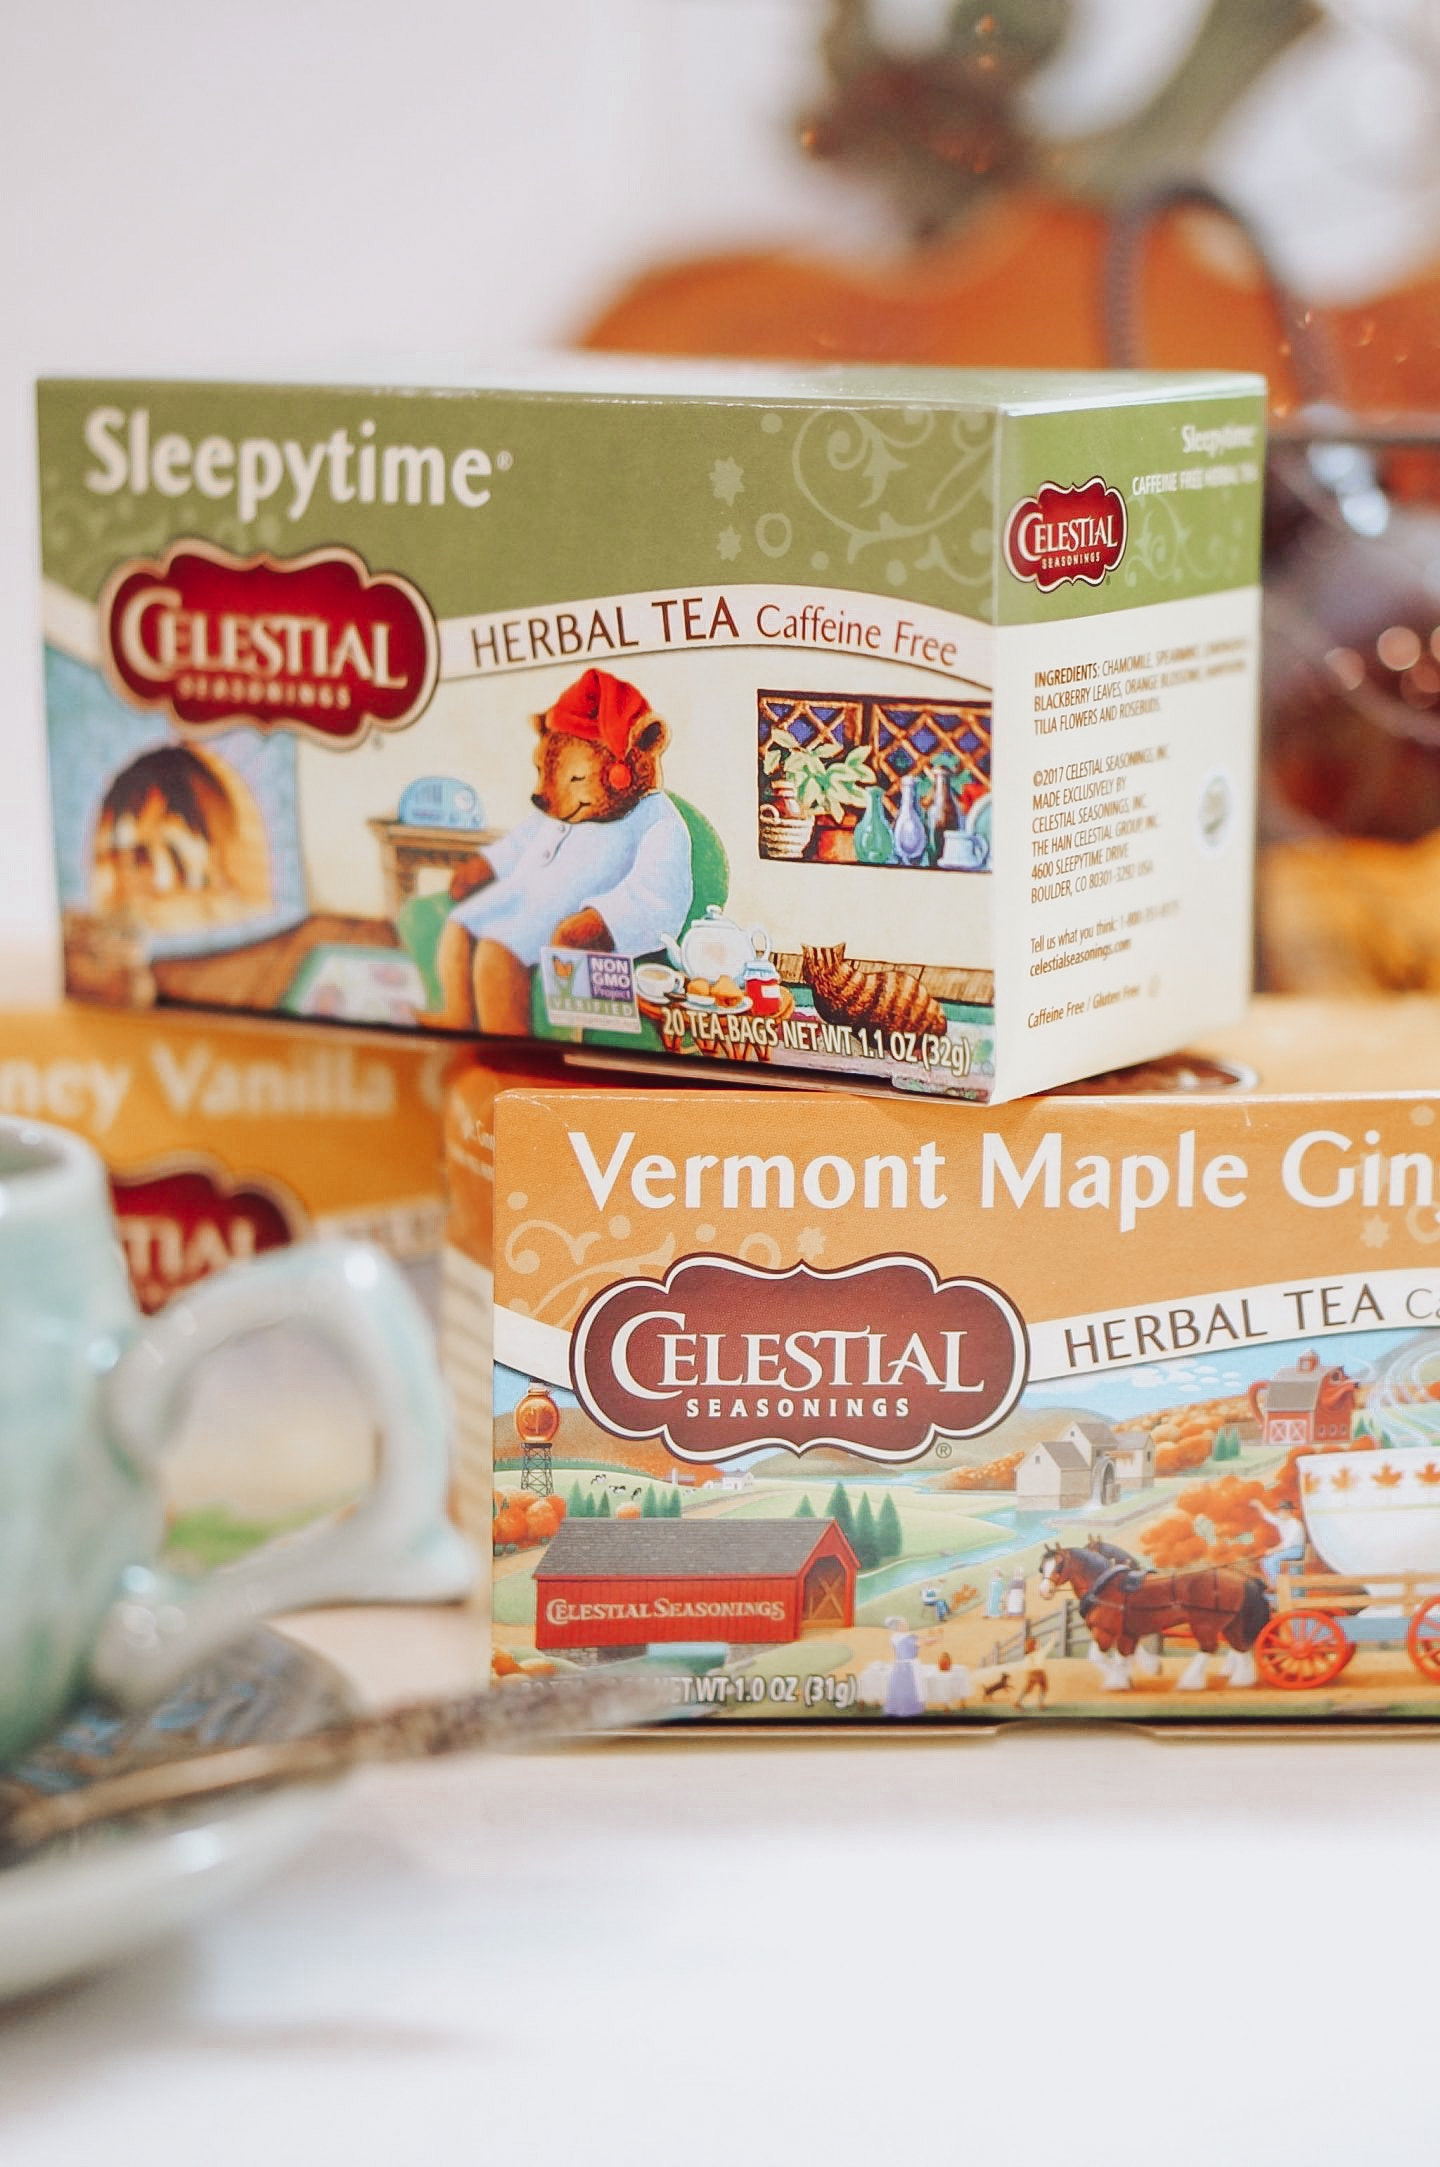 NC blogger Rebecca Lately is sharing her favorite fall teas, just in time for Fall in September! Check this out for tea recommendations.